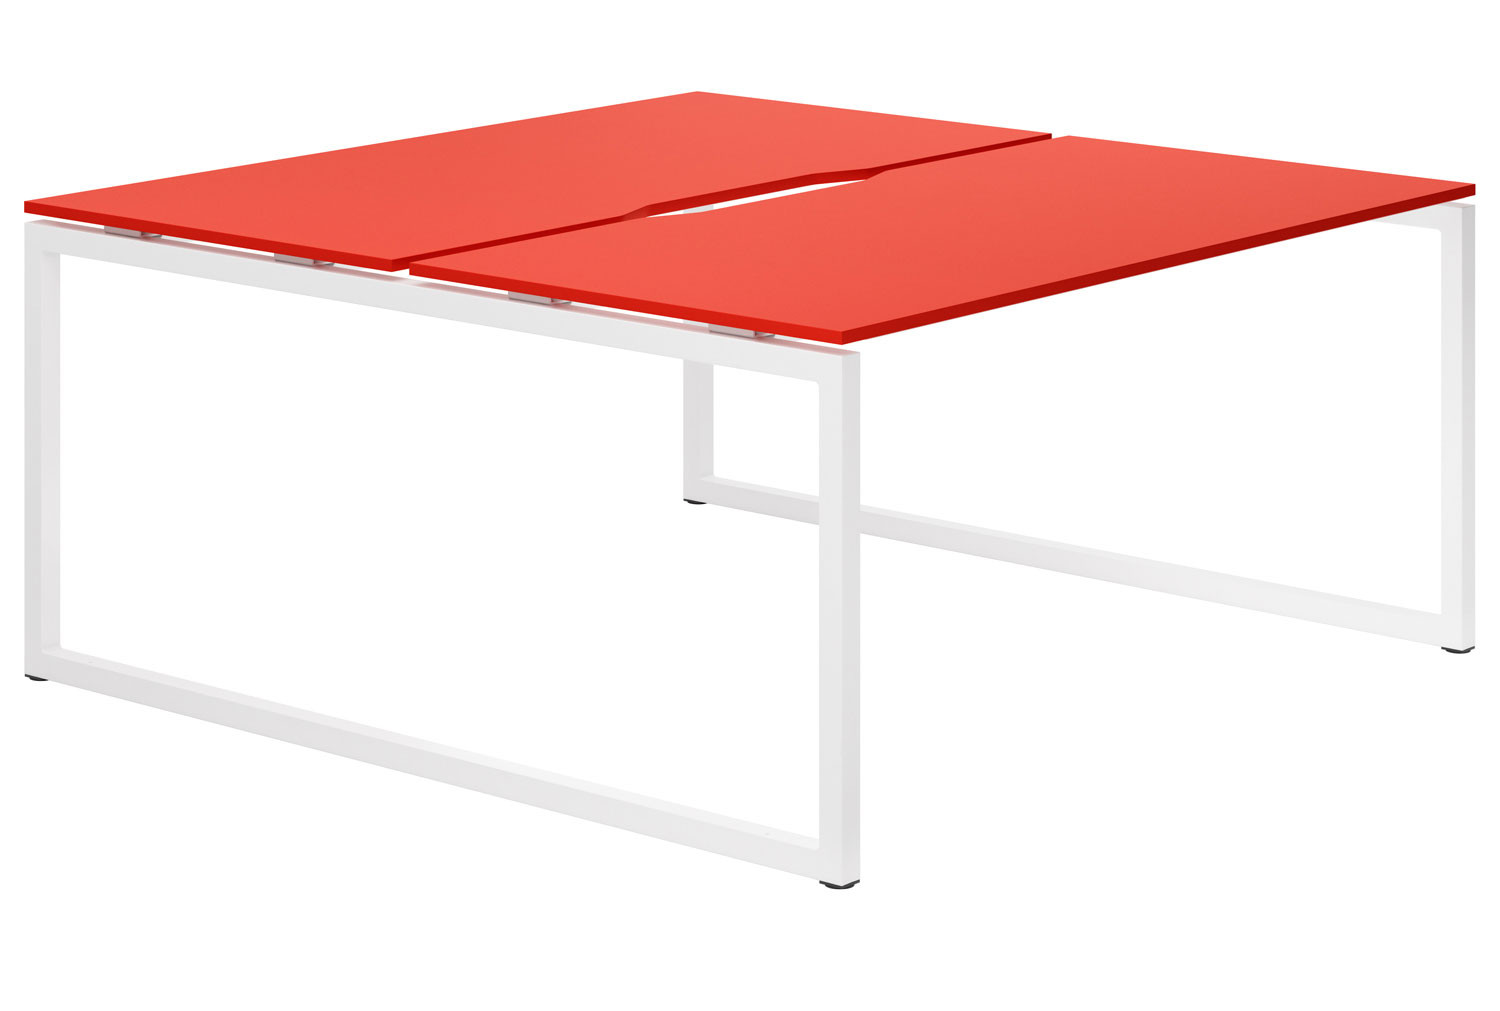 Campos Hooped Leg 2 Person Back To Back Bench Desk (Red)